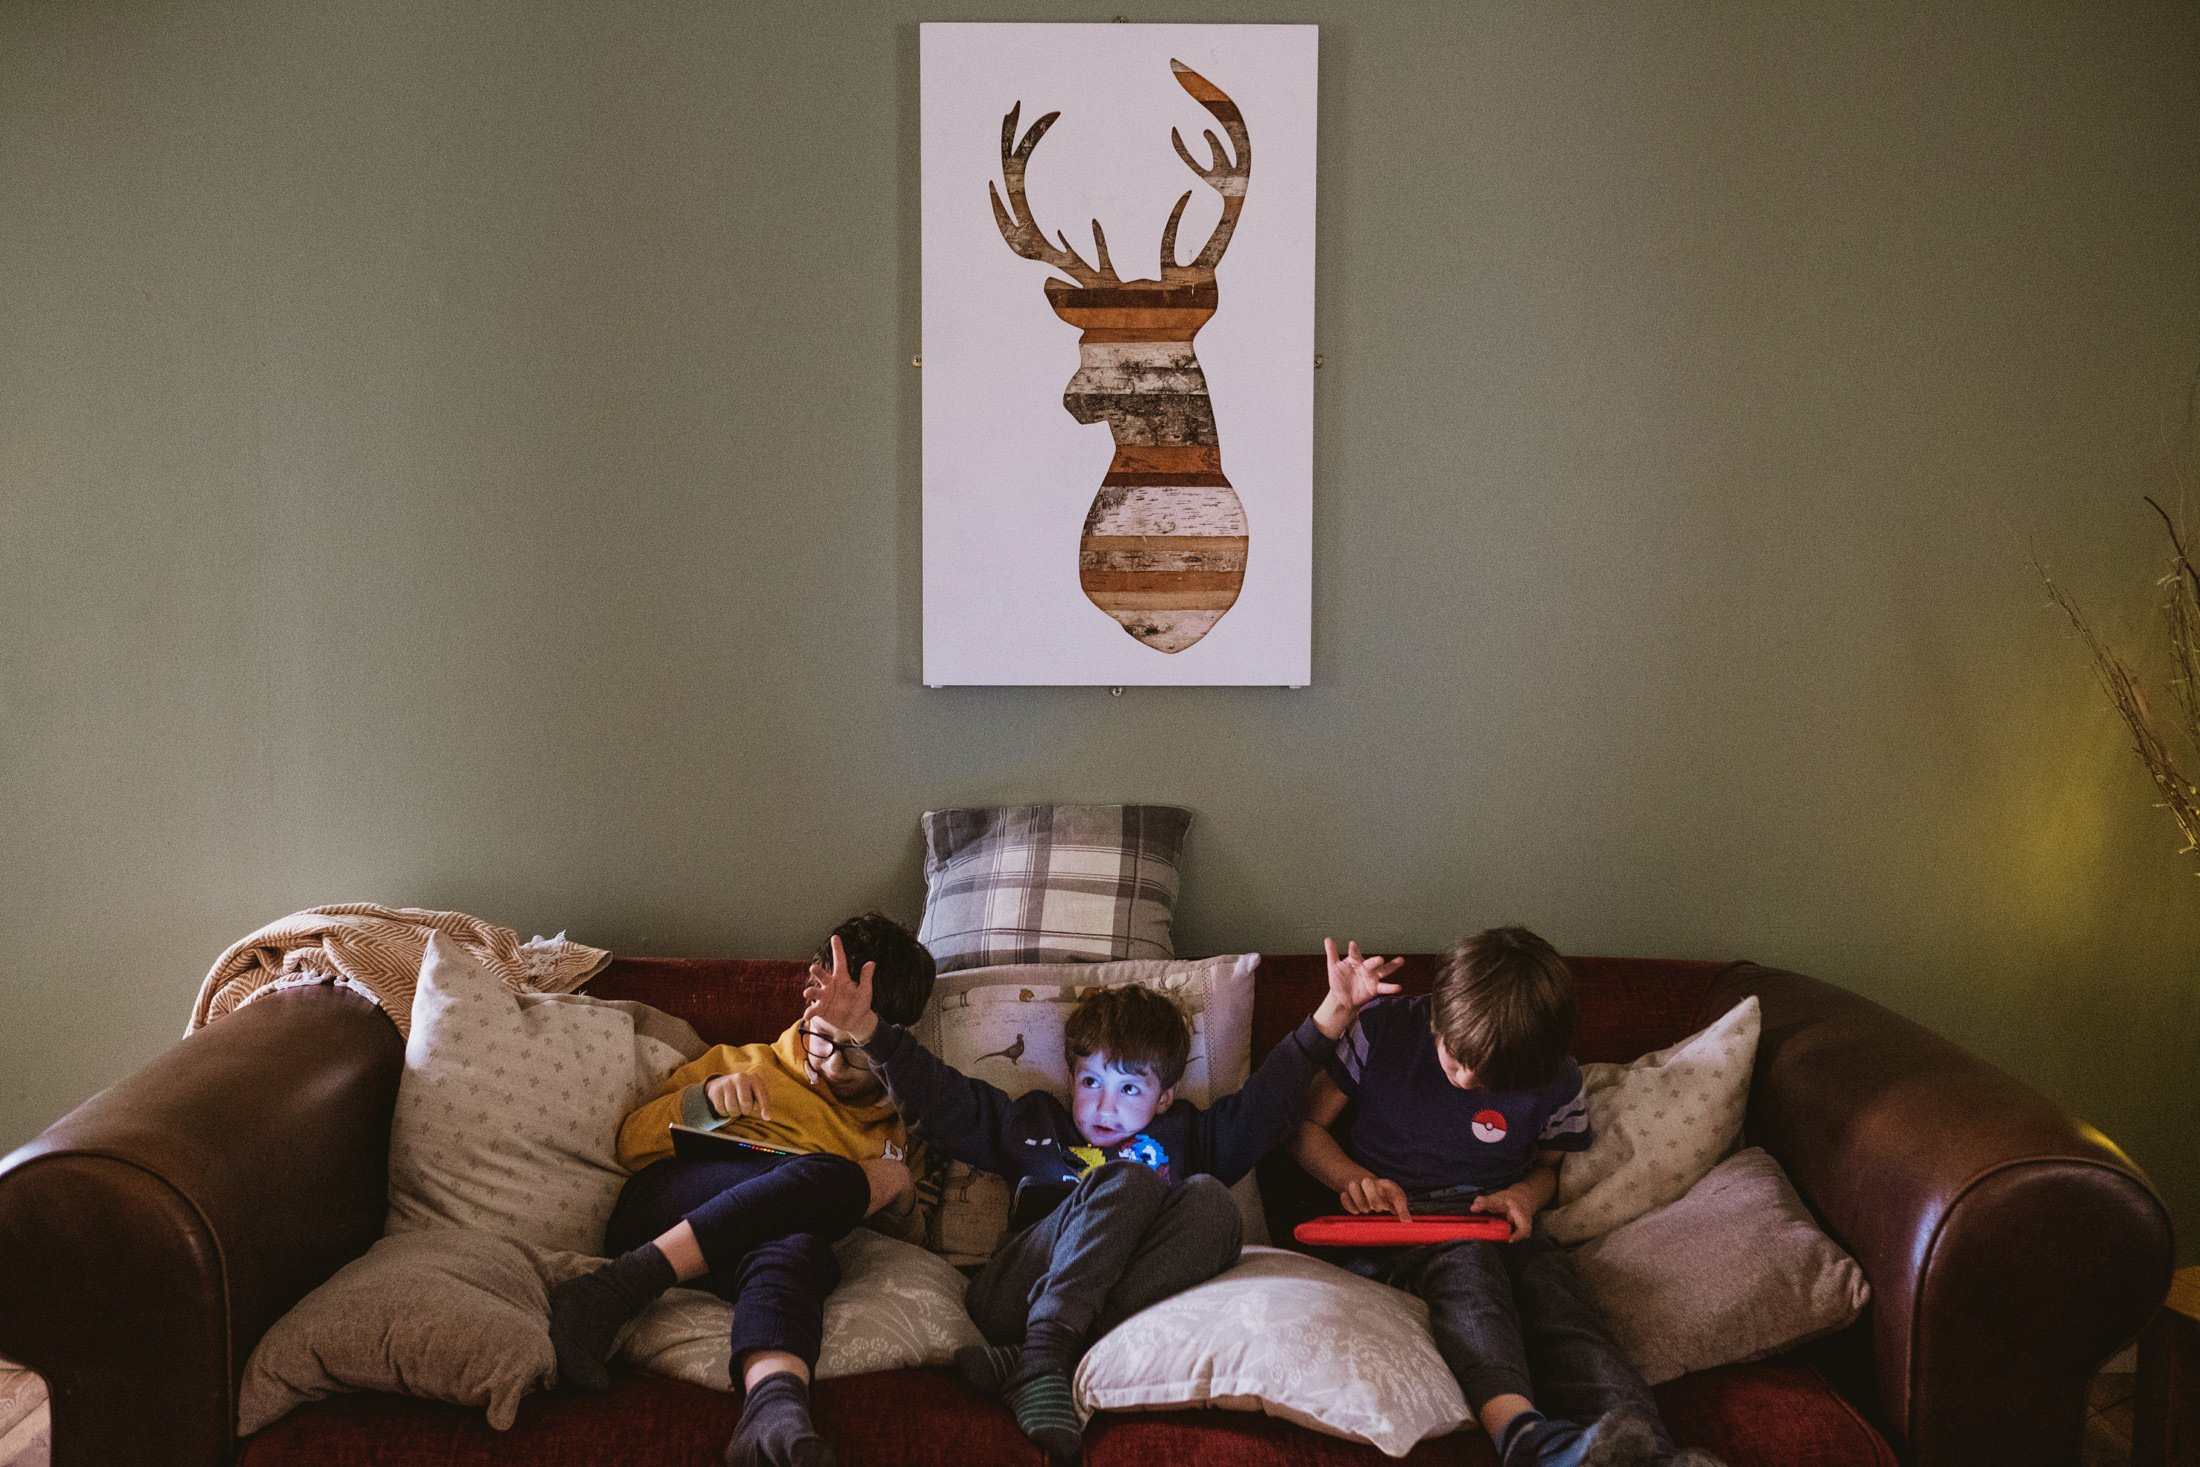 children sat on the sofa playing on electronic devices